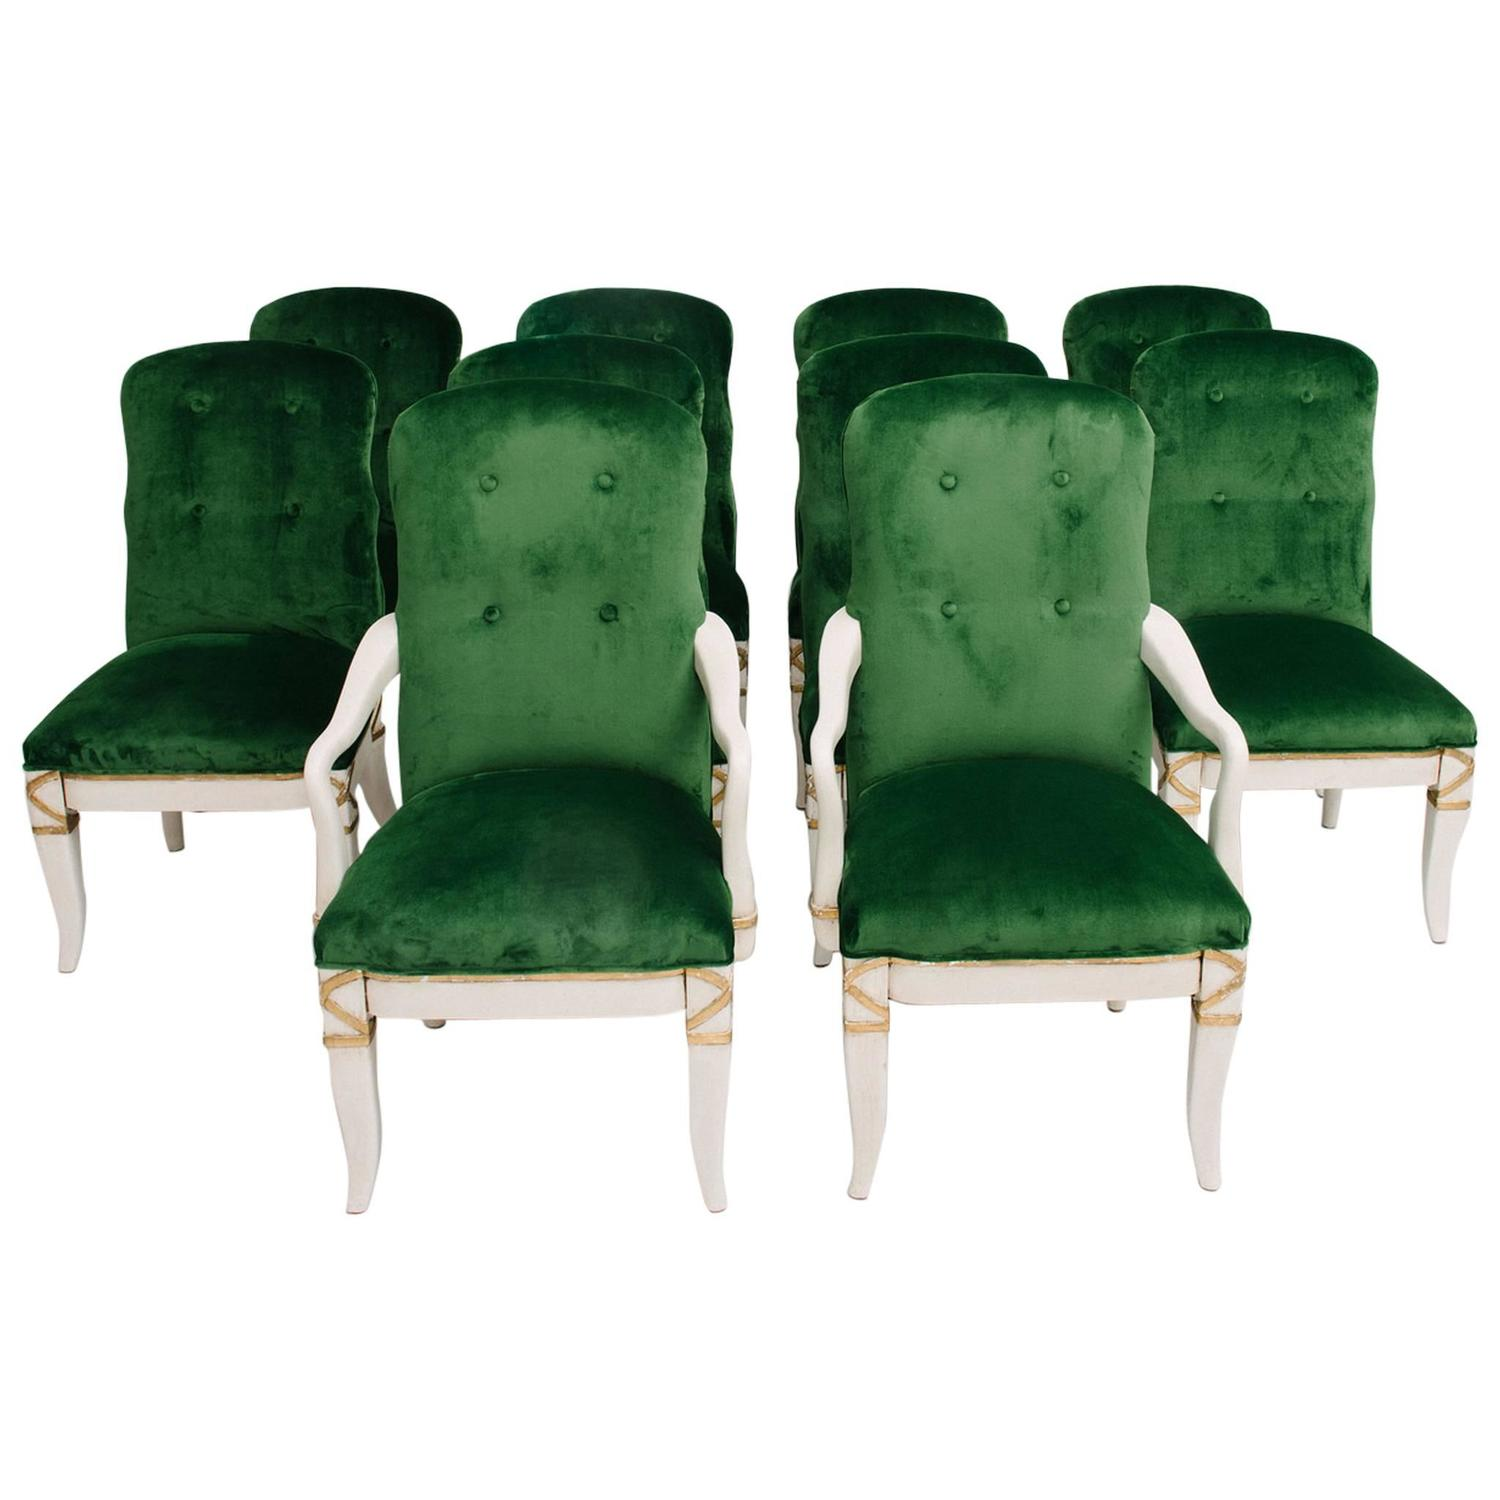 marge carson chairs modern art chair covers and linens set of 10 dining for sale at 1stdibs